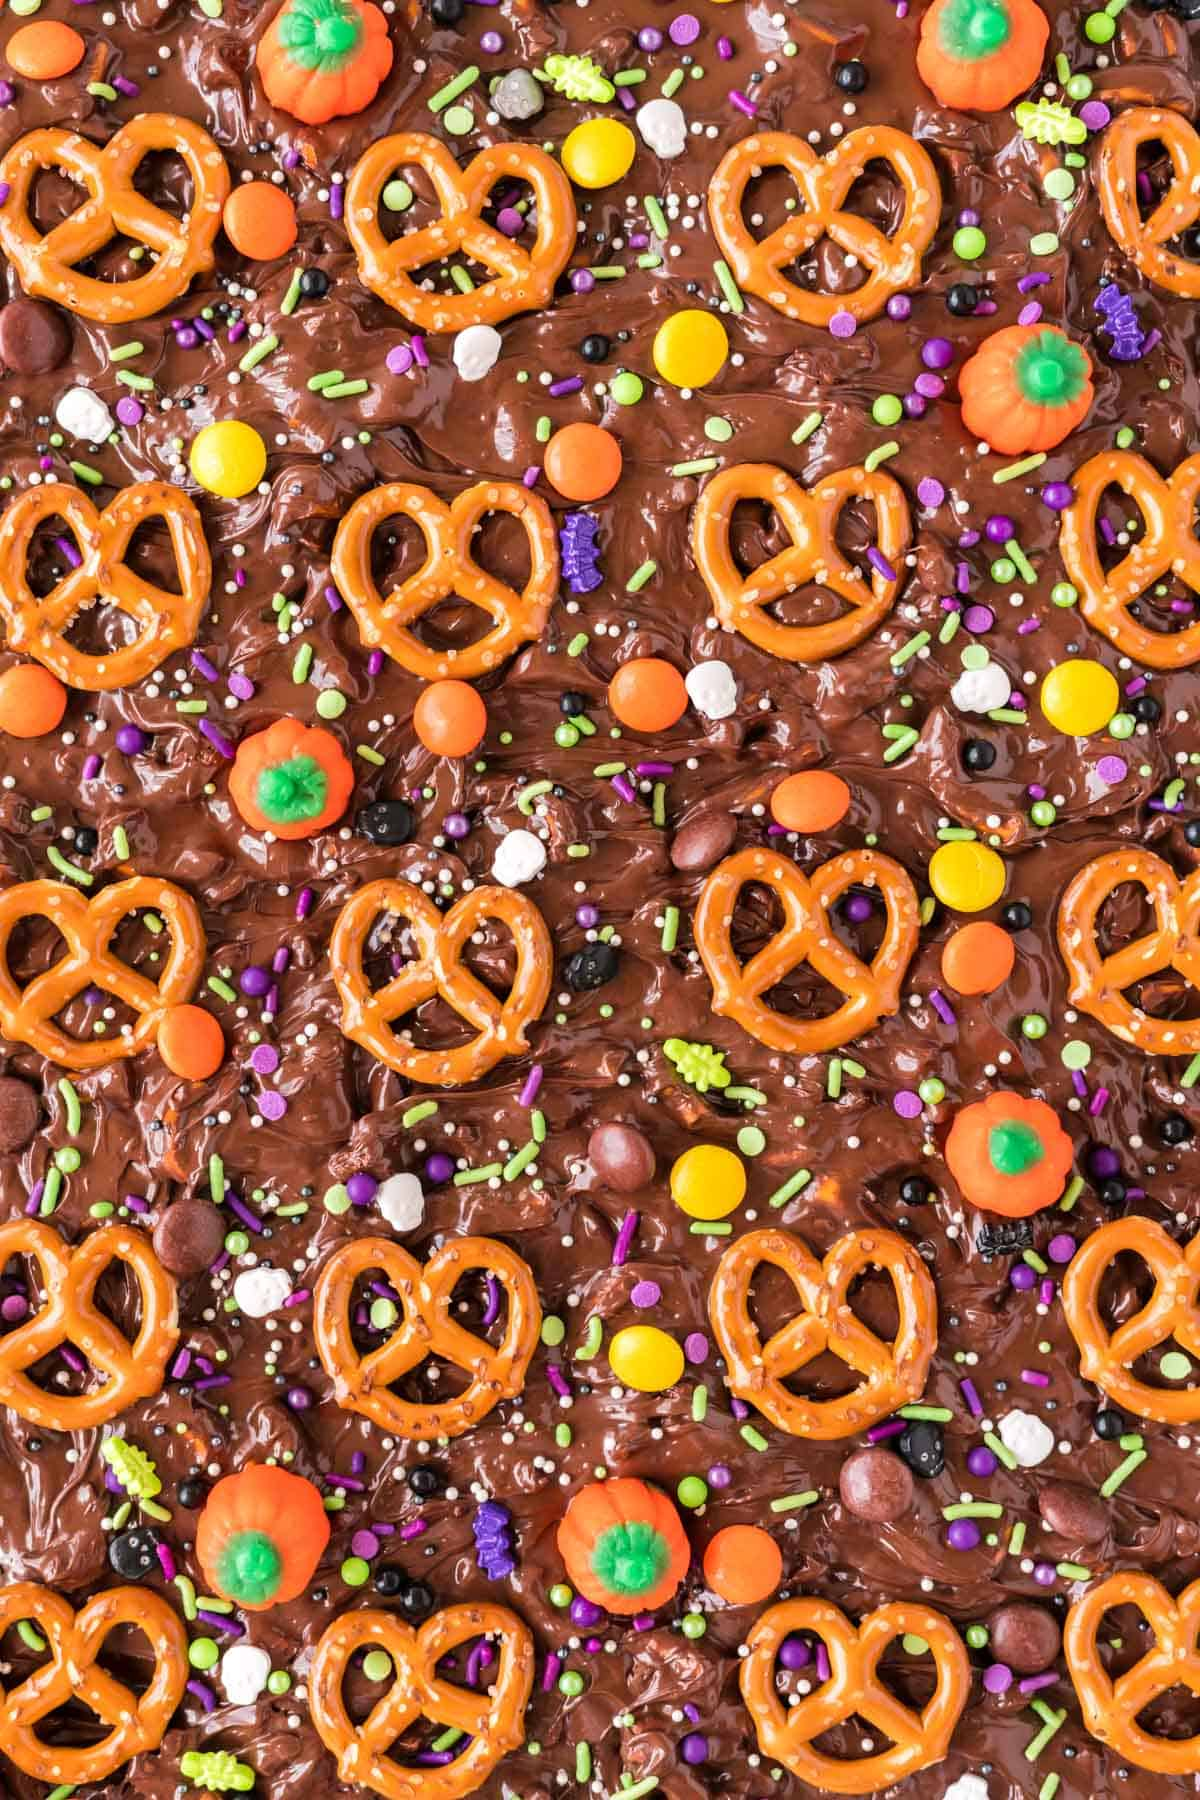 candy pumpkins, sprinkles, and reese's pieces added for decoration